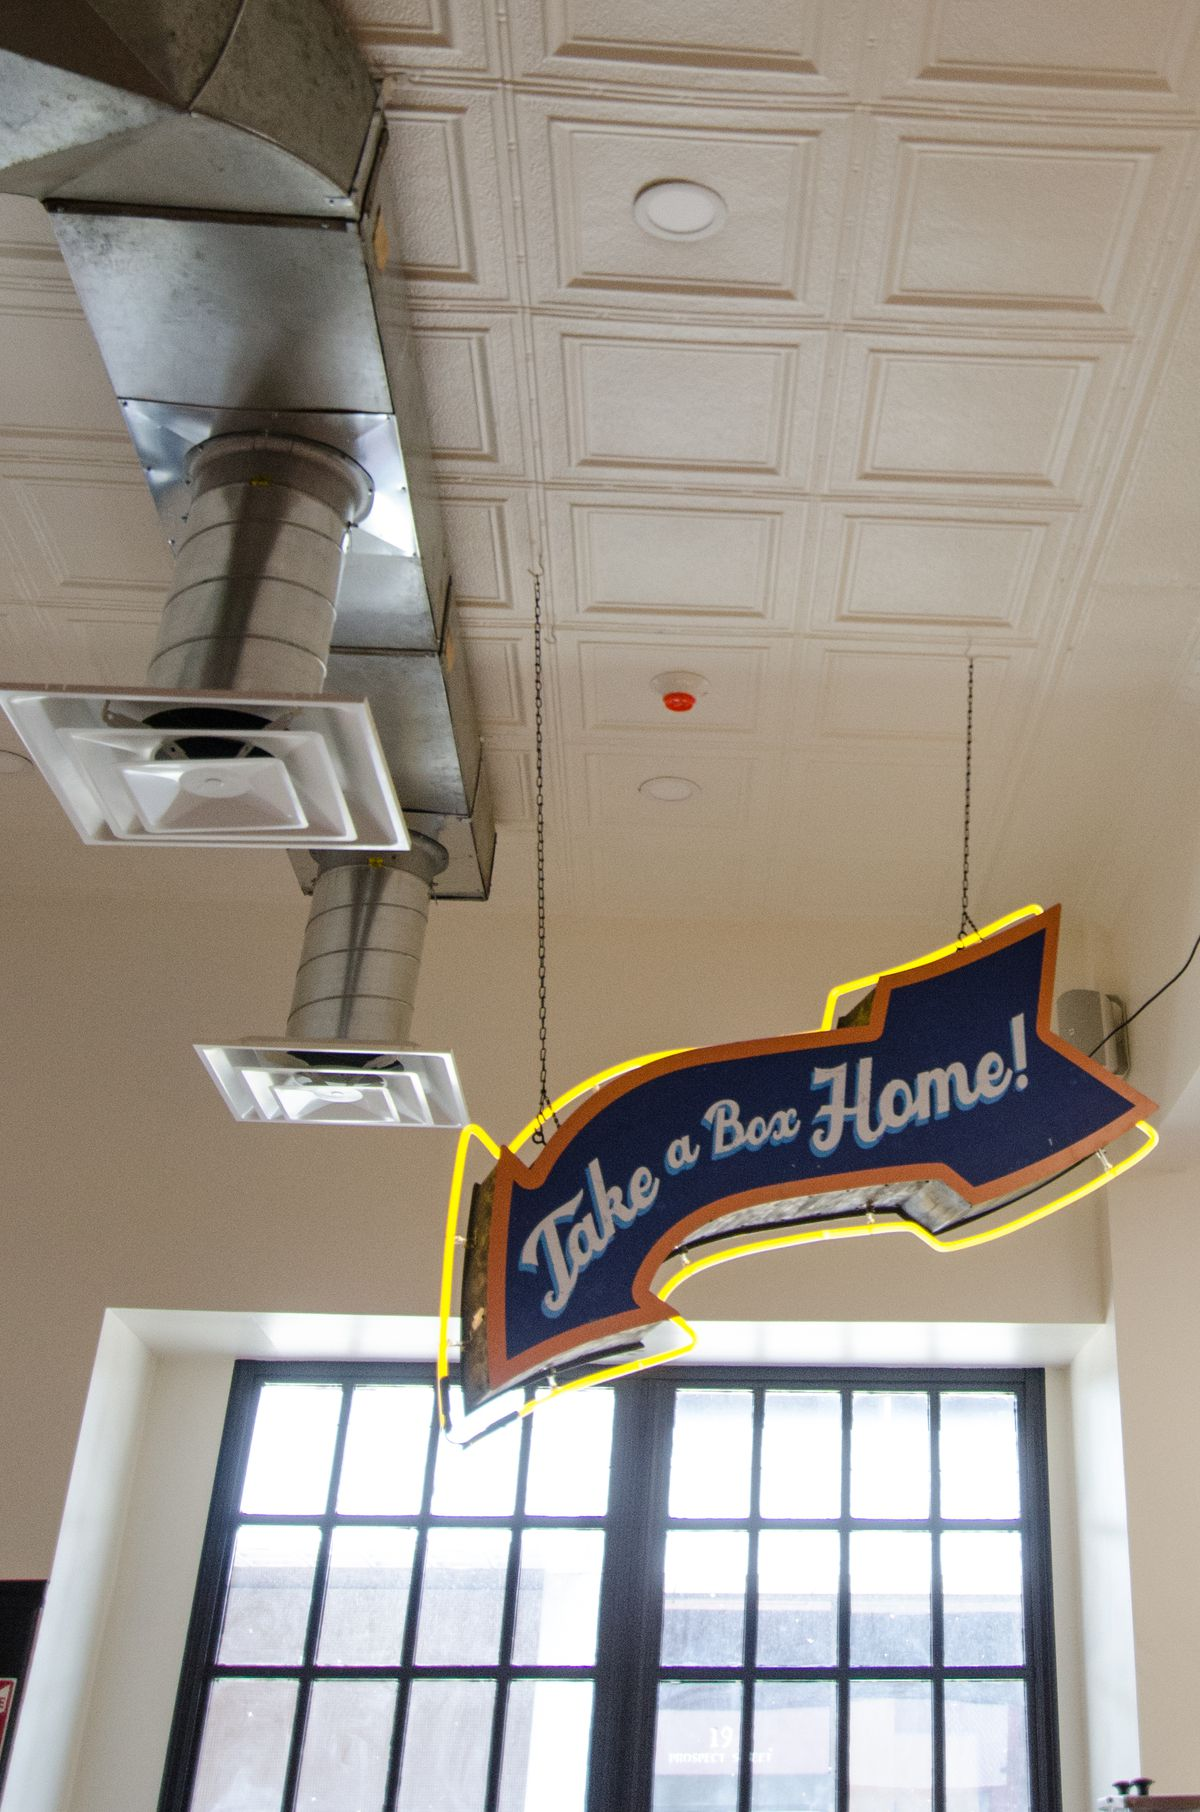 """A vintage-looking arrow-shaped sign has cursive text that says """"take a box home!"""" It hangs from the ceiling of a brightly lit restaurant in front of a large window"""